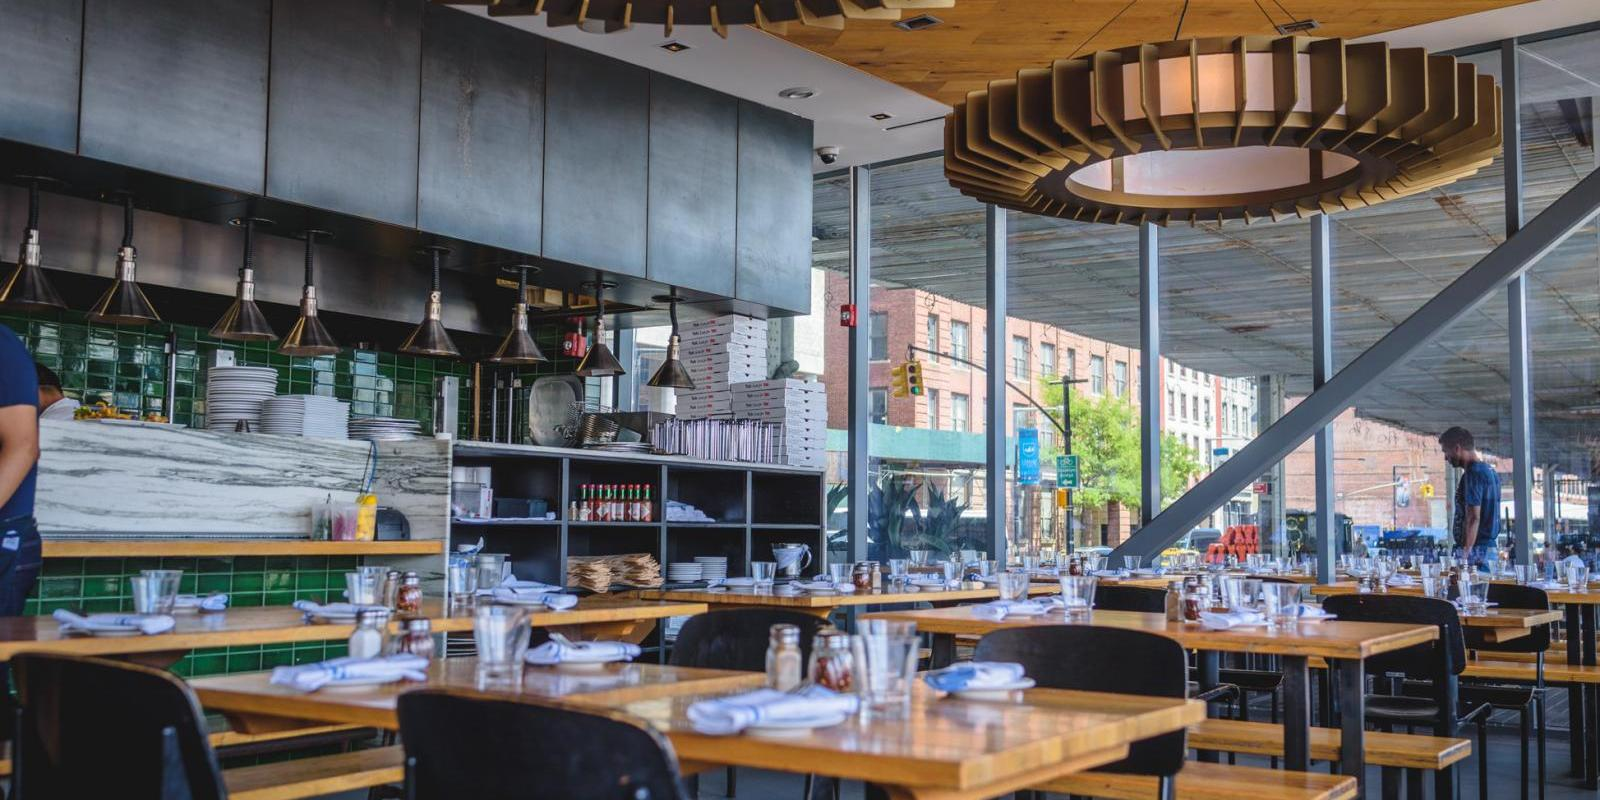 lovely industry kitchen seaport | Industry Kitchen South Street Seaport - Lunch by the East ...